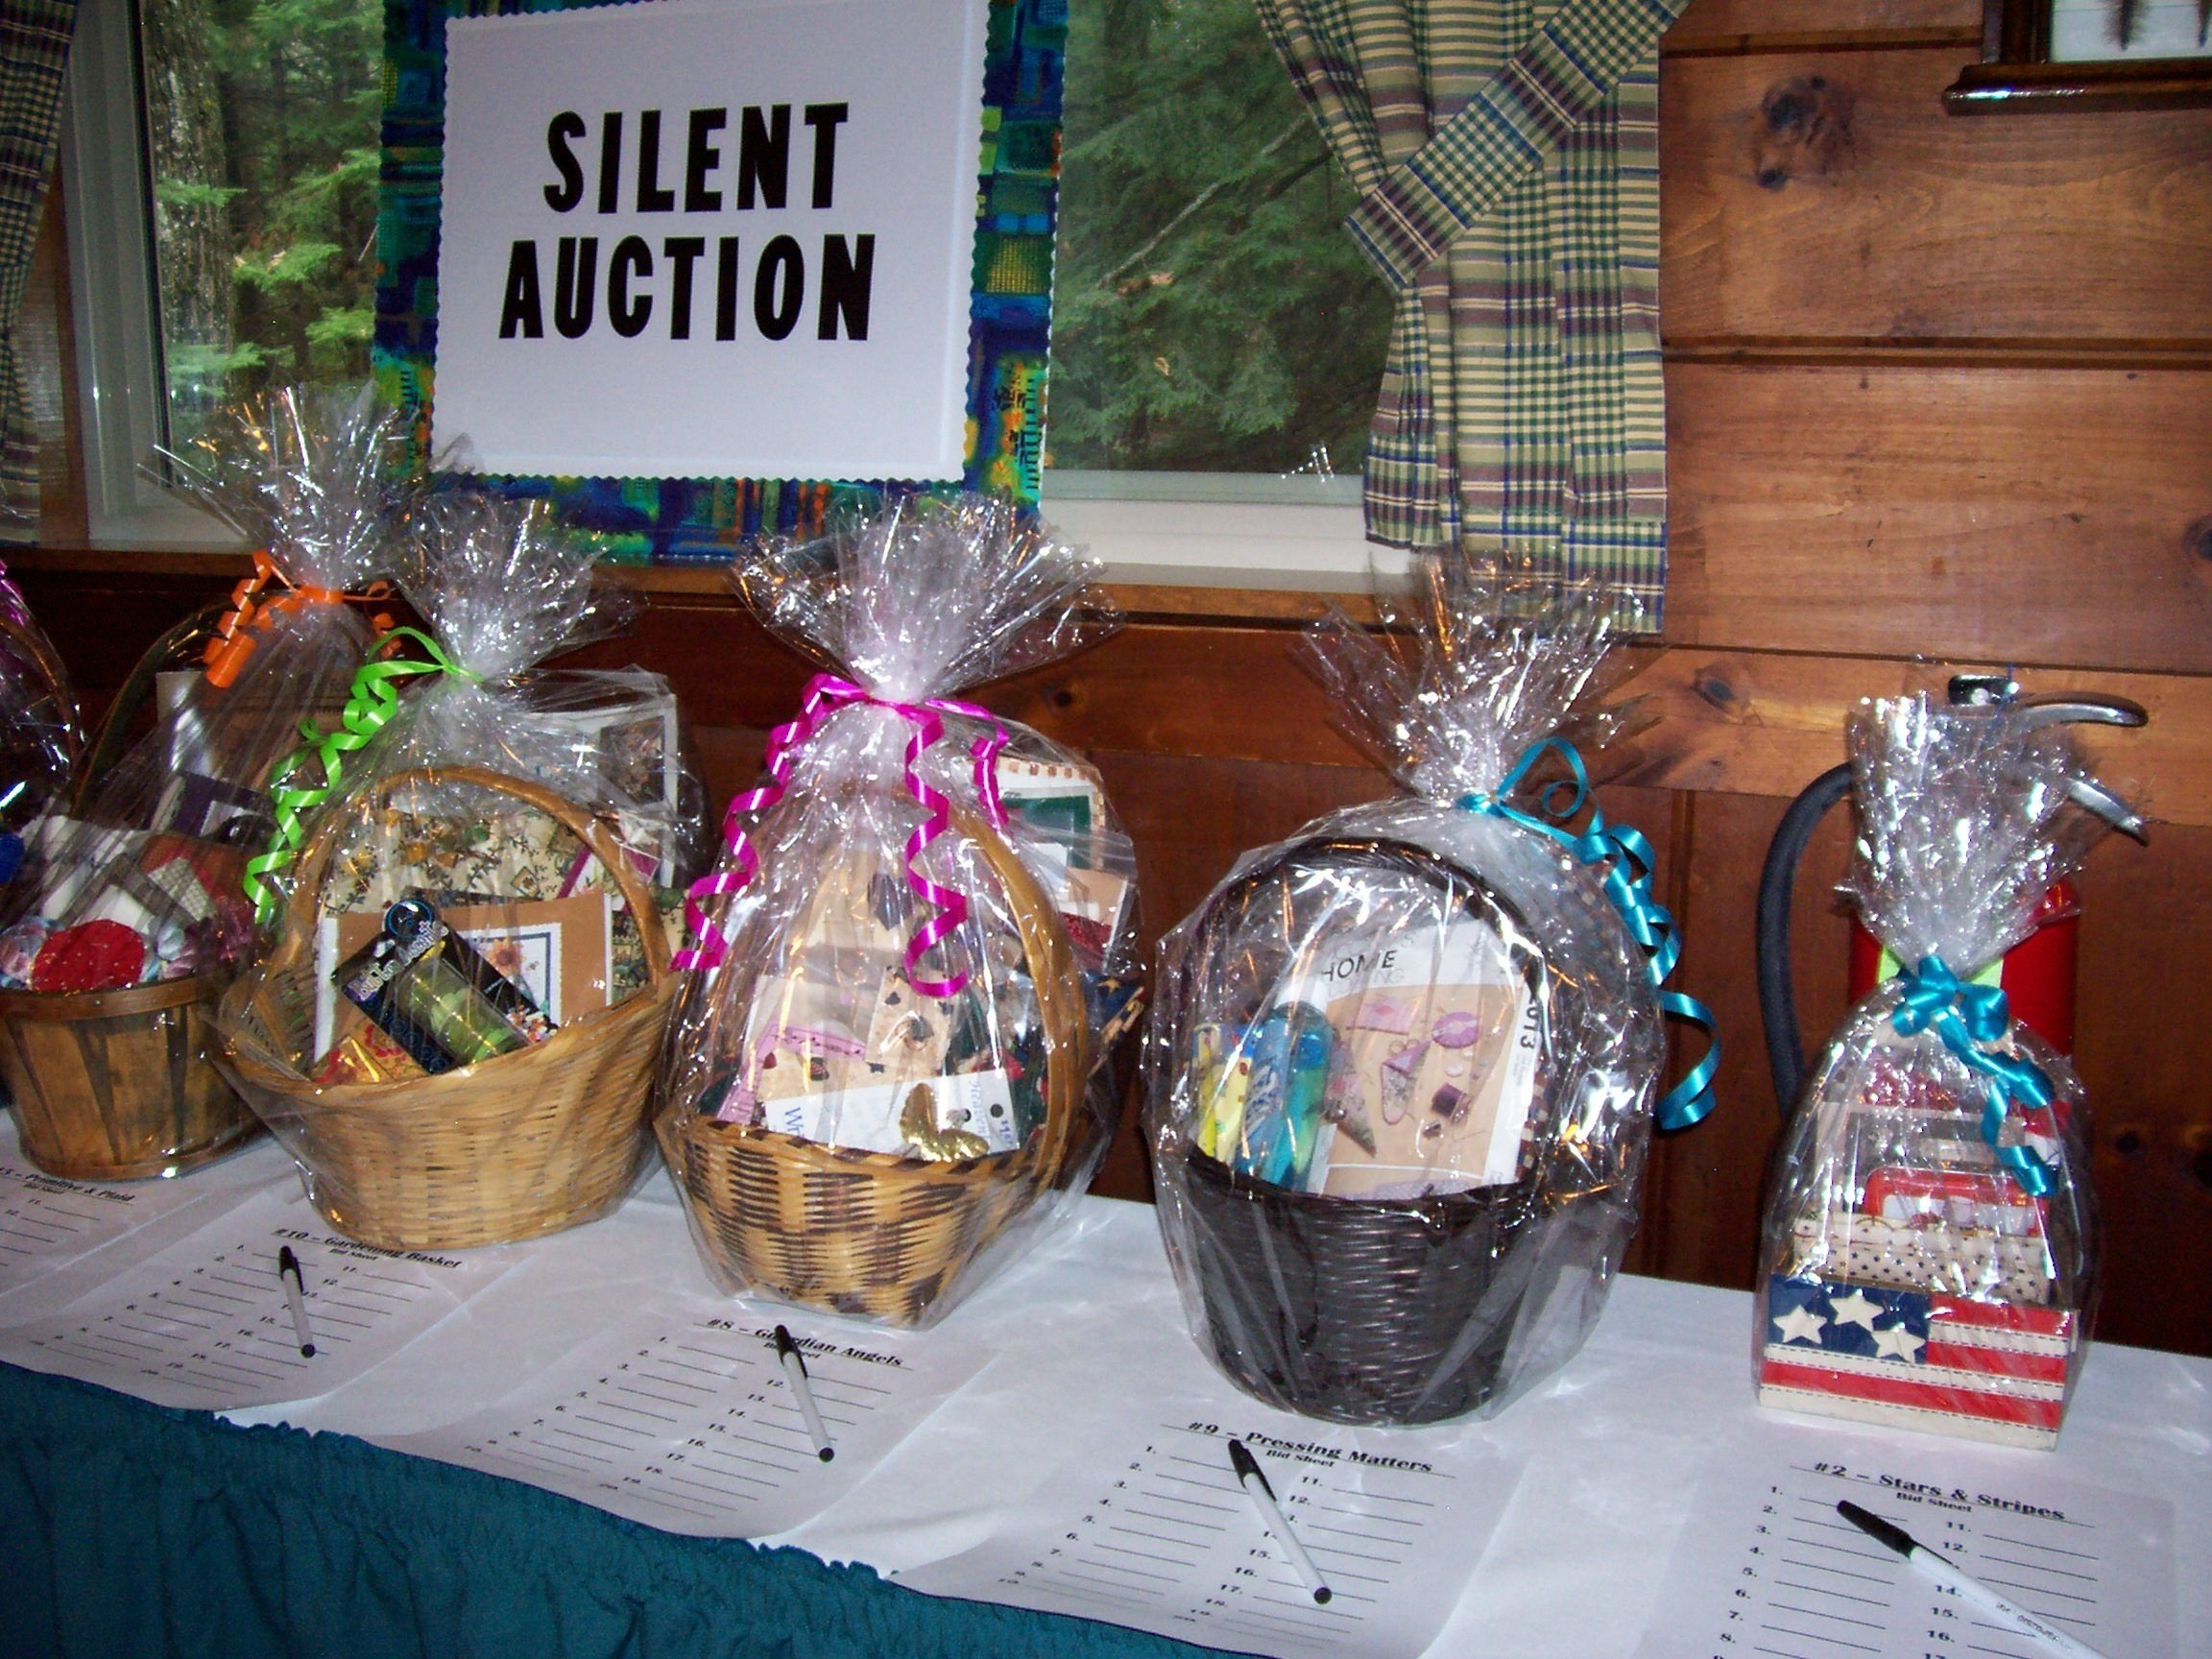 10 nice ideas for silent auction baskets